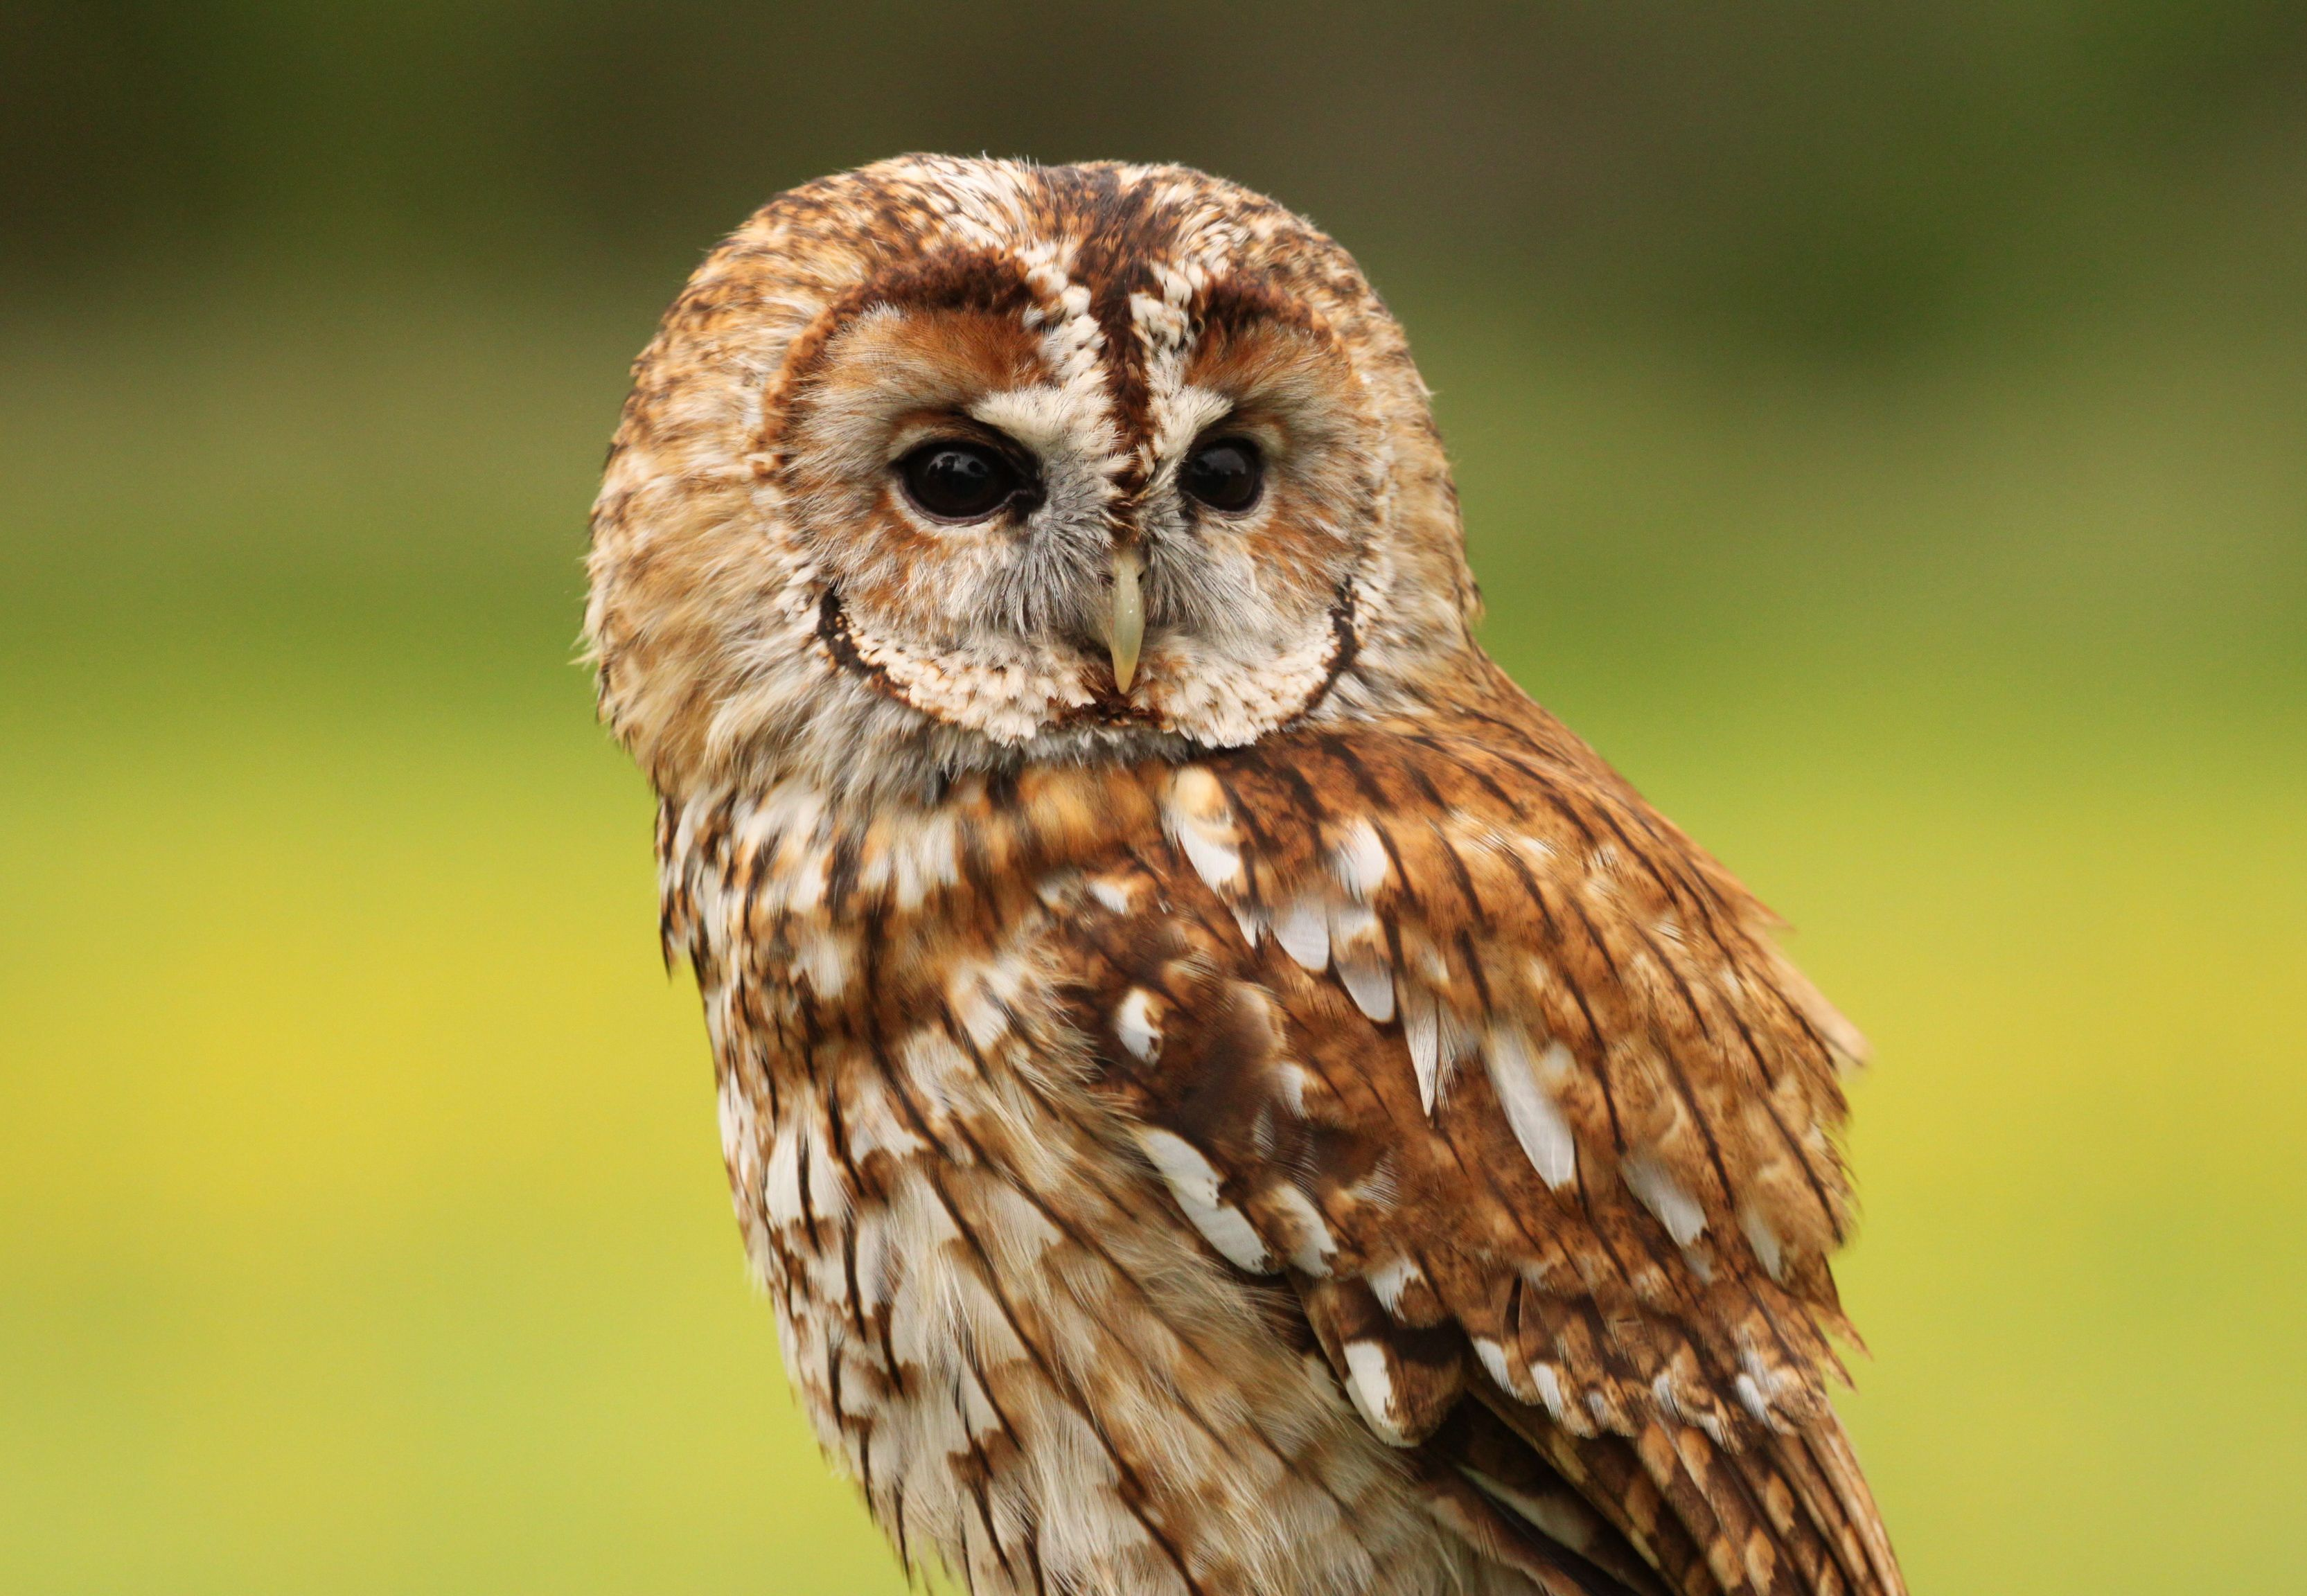 Tawny Owl Wallpapers Images Photos Pictures Backgrounds